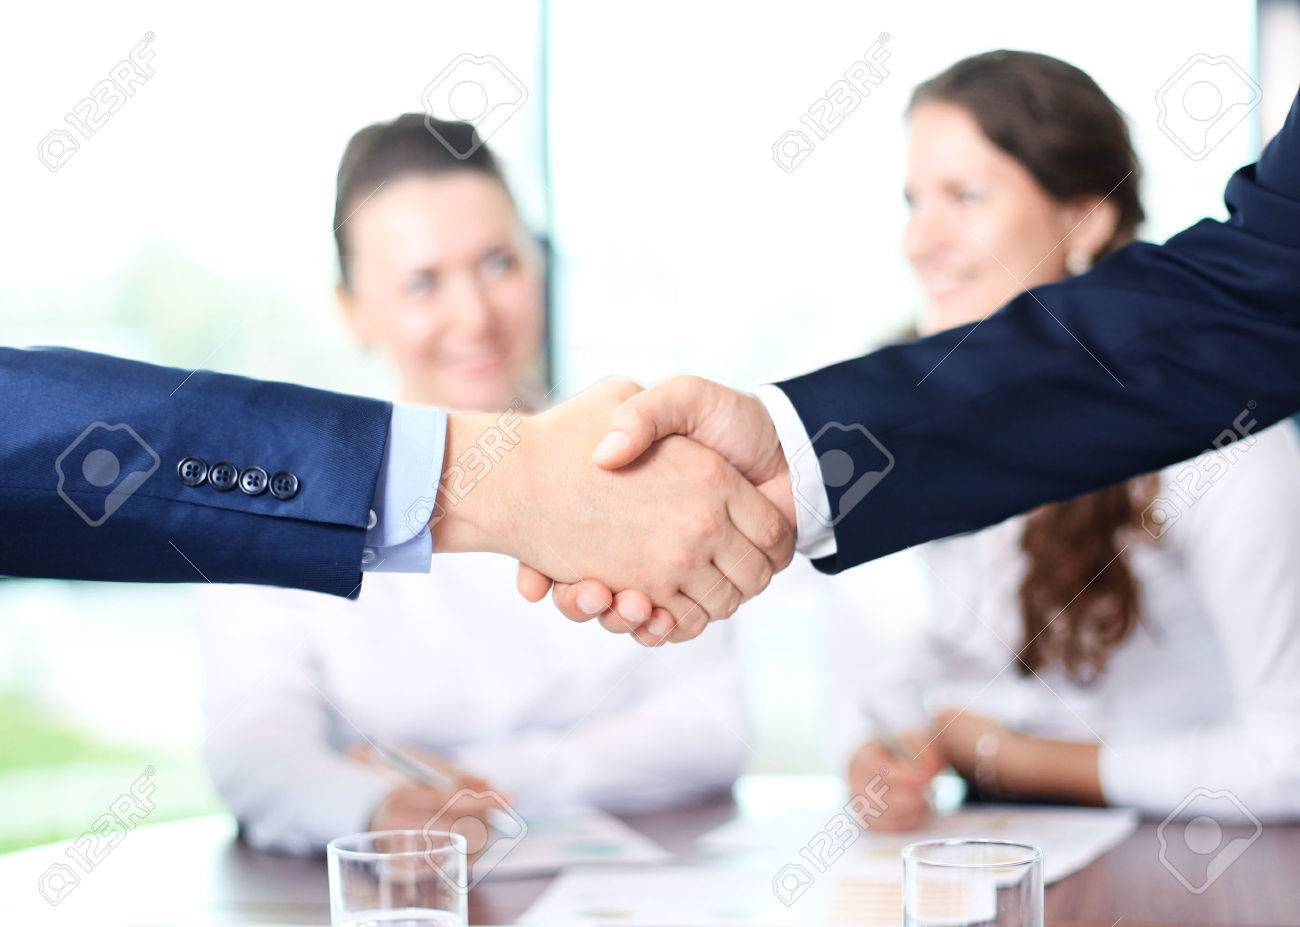 Business people shaking hands, finishing up a meeting - 40549817